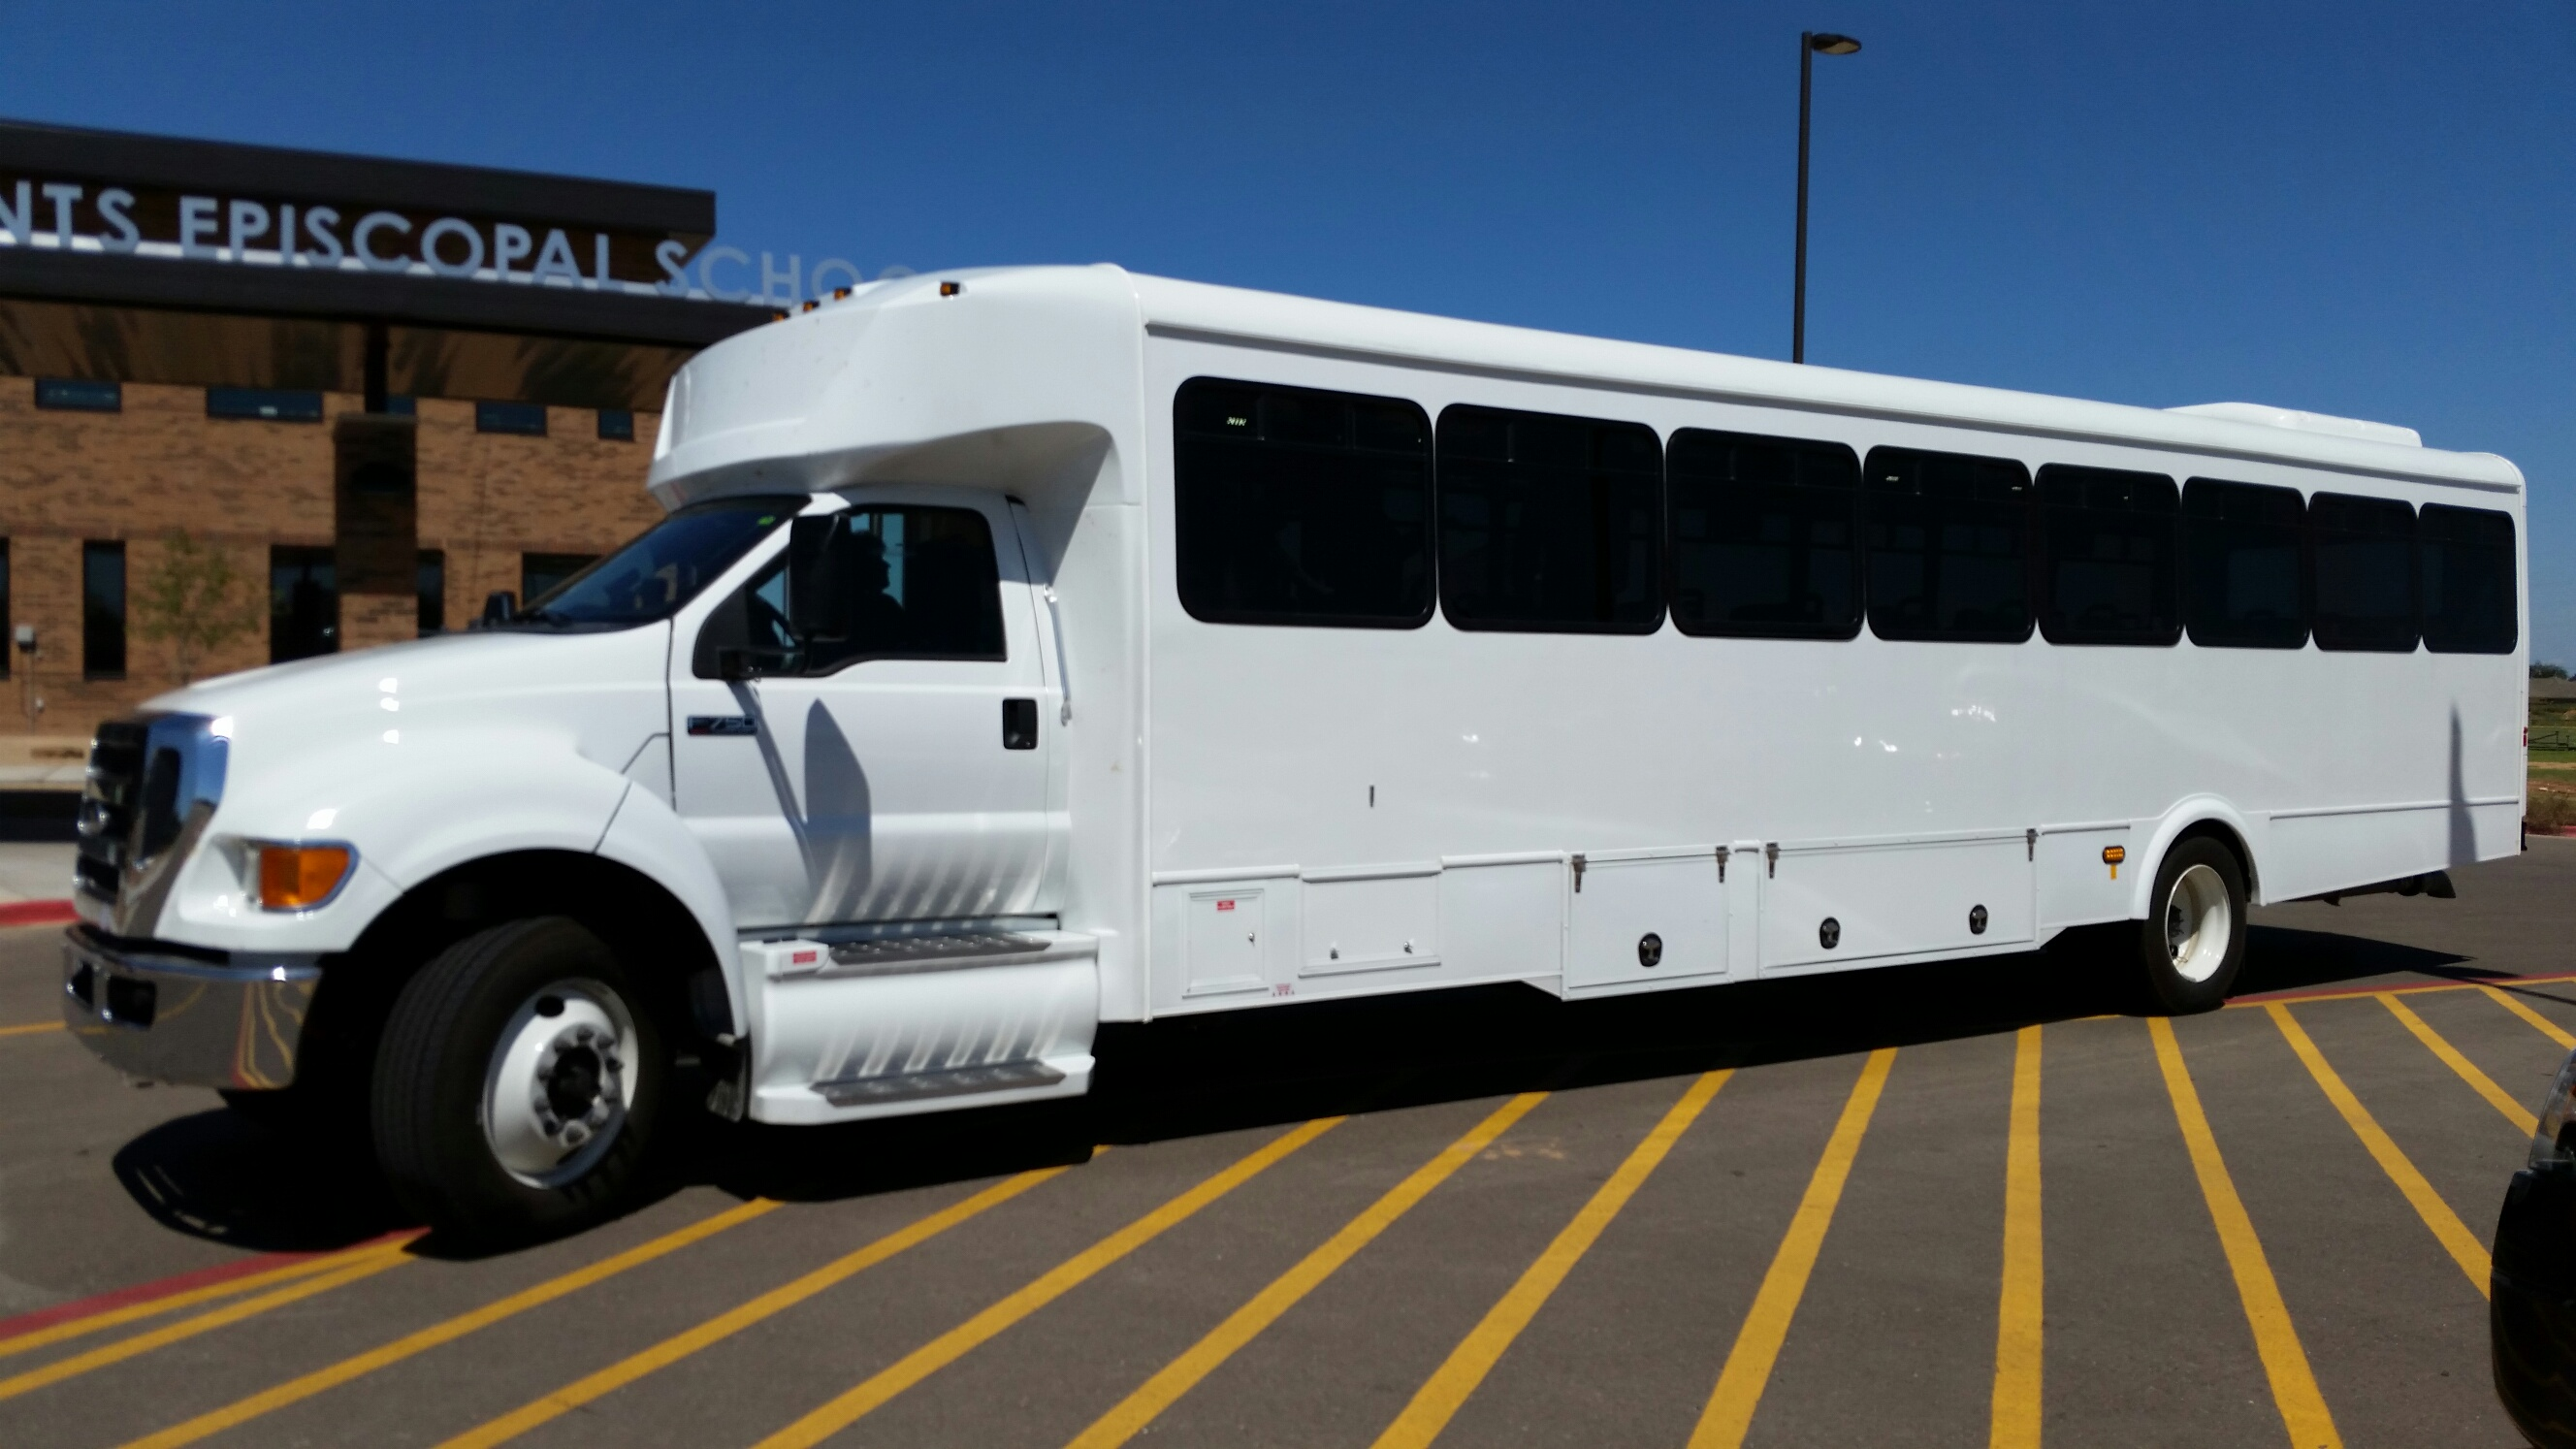 bus van custom bus s church paratransit off road detainee glaval 49 passenger plus driver 2015 3200 miles